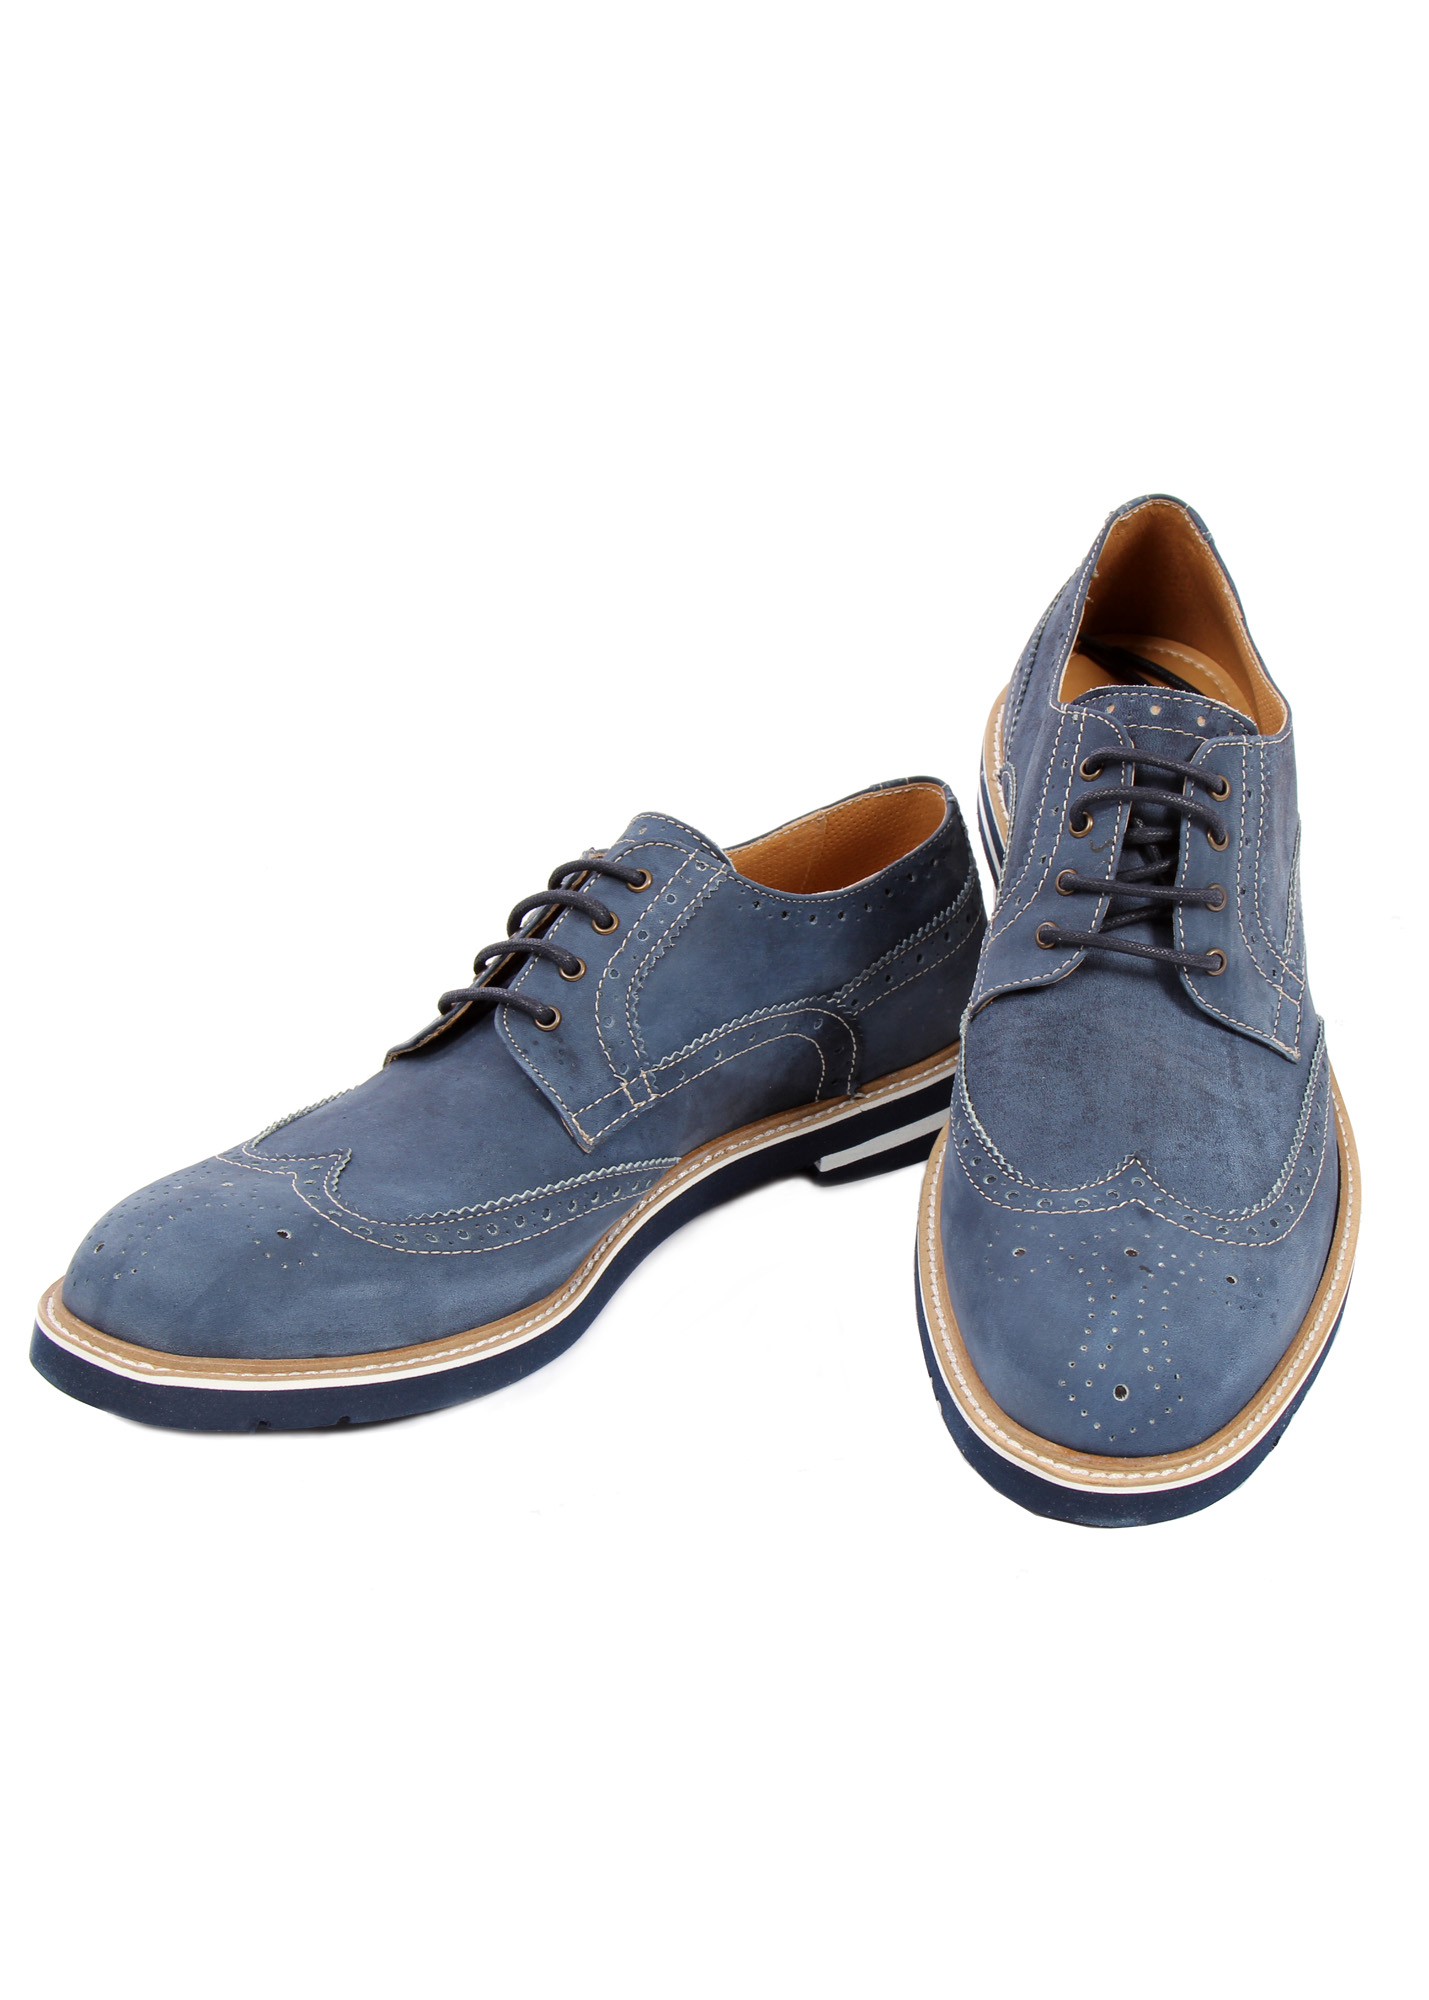 italian leather shoes brogues clothing store kokos